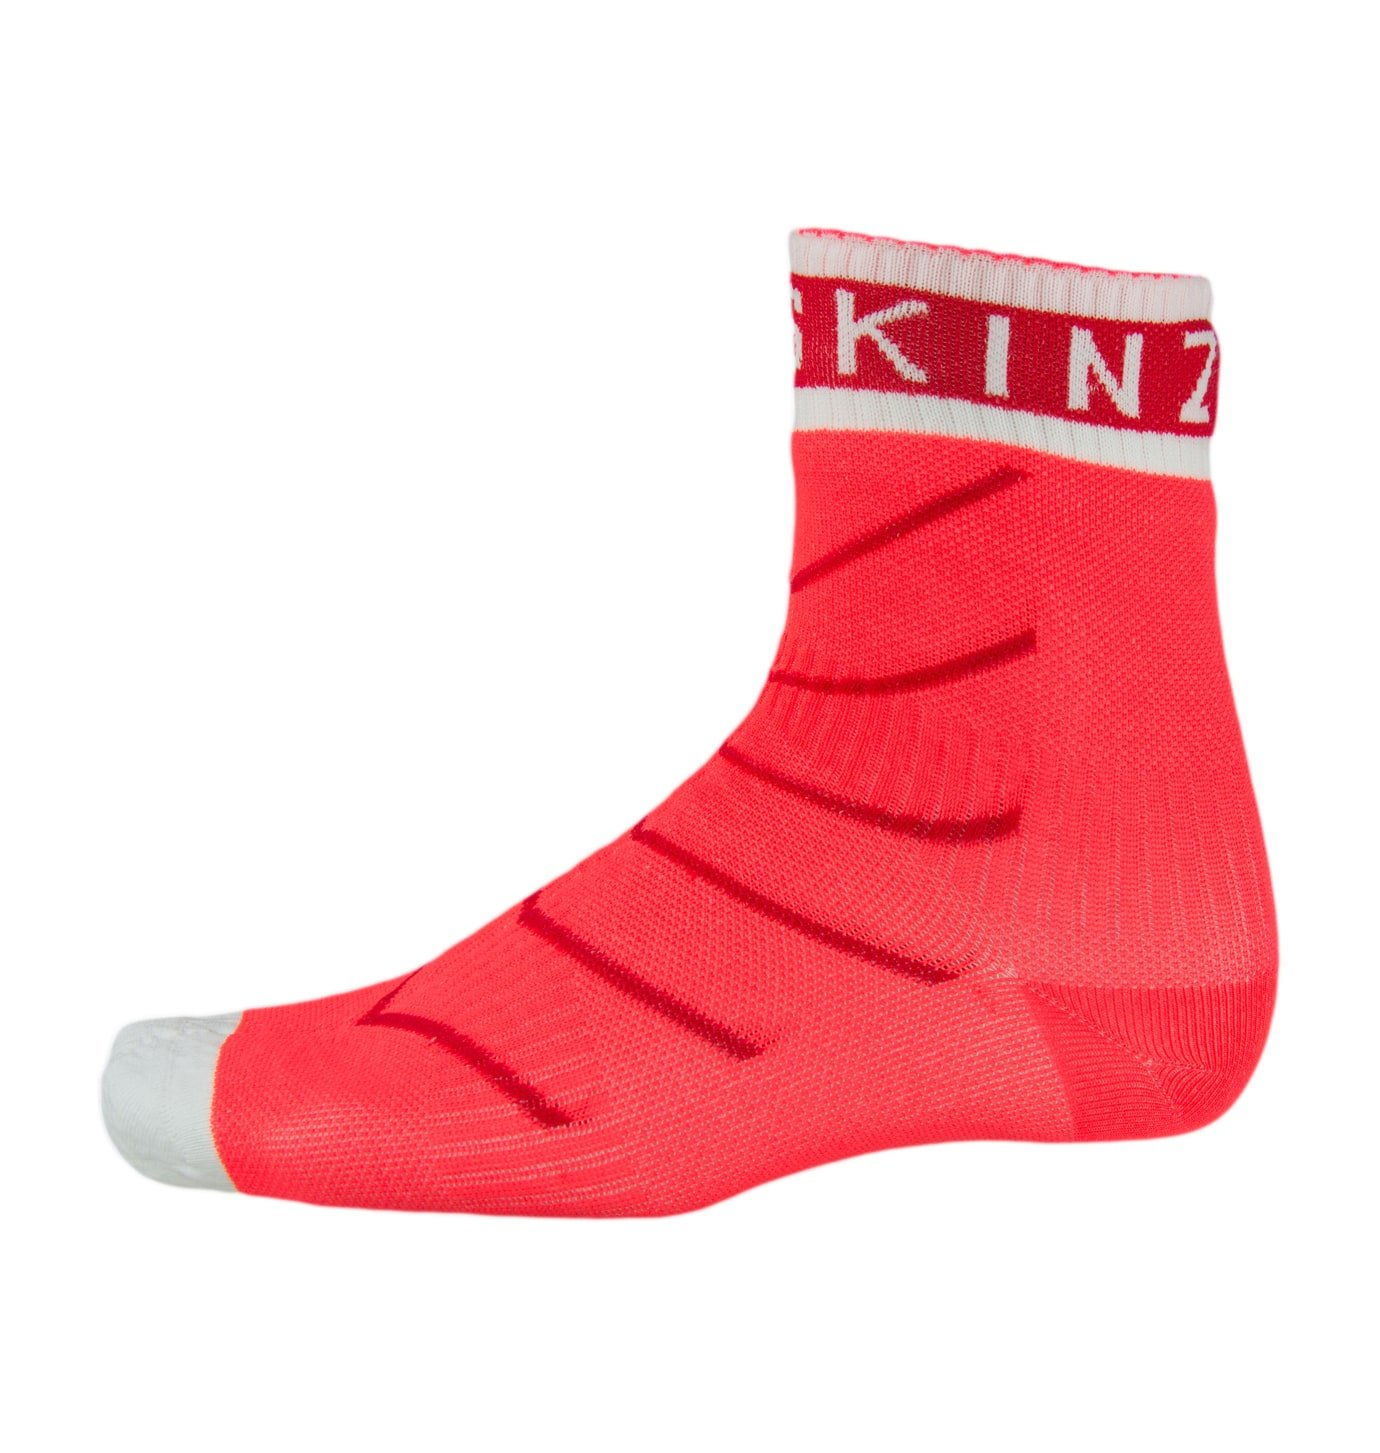 SEALSKINZ Super Thin Pro Ankle Sock with Hydrostop Coral/Red/White, M - Men's by SEALSKINZ